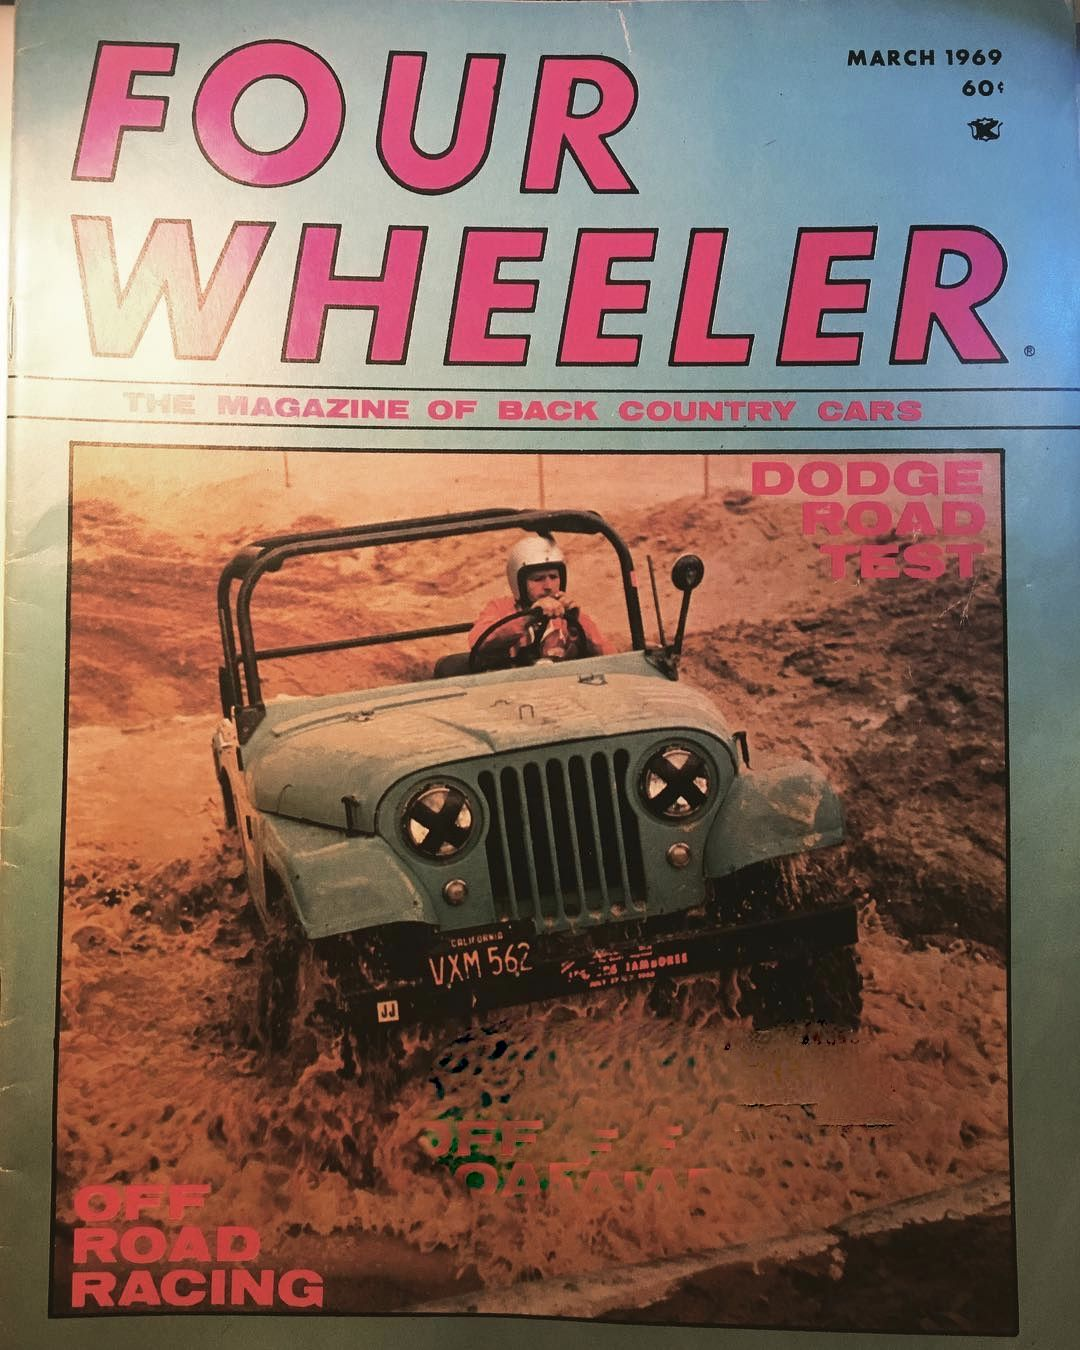 Jeep Parts Magazine : parts, magazine, Wheeler, Magazine,, Archer, Winning, Riverside, Grand, Parts,, Jeep,